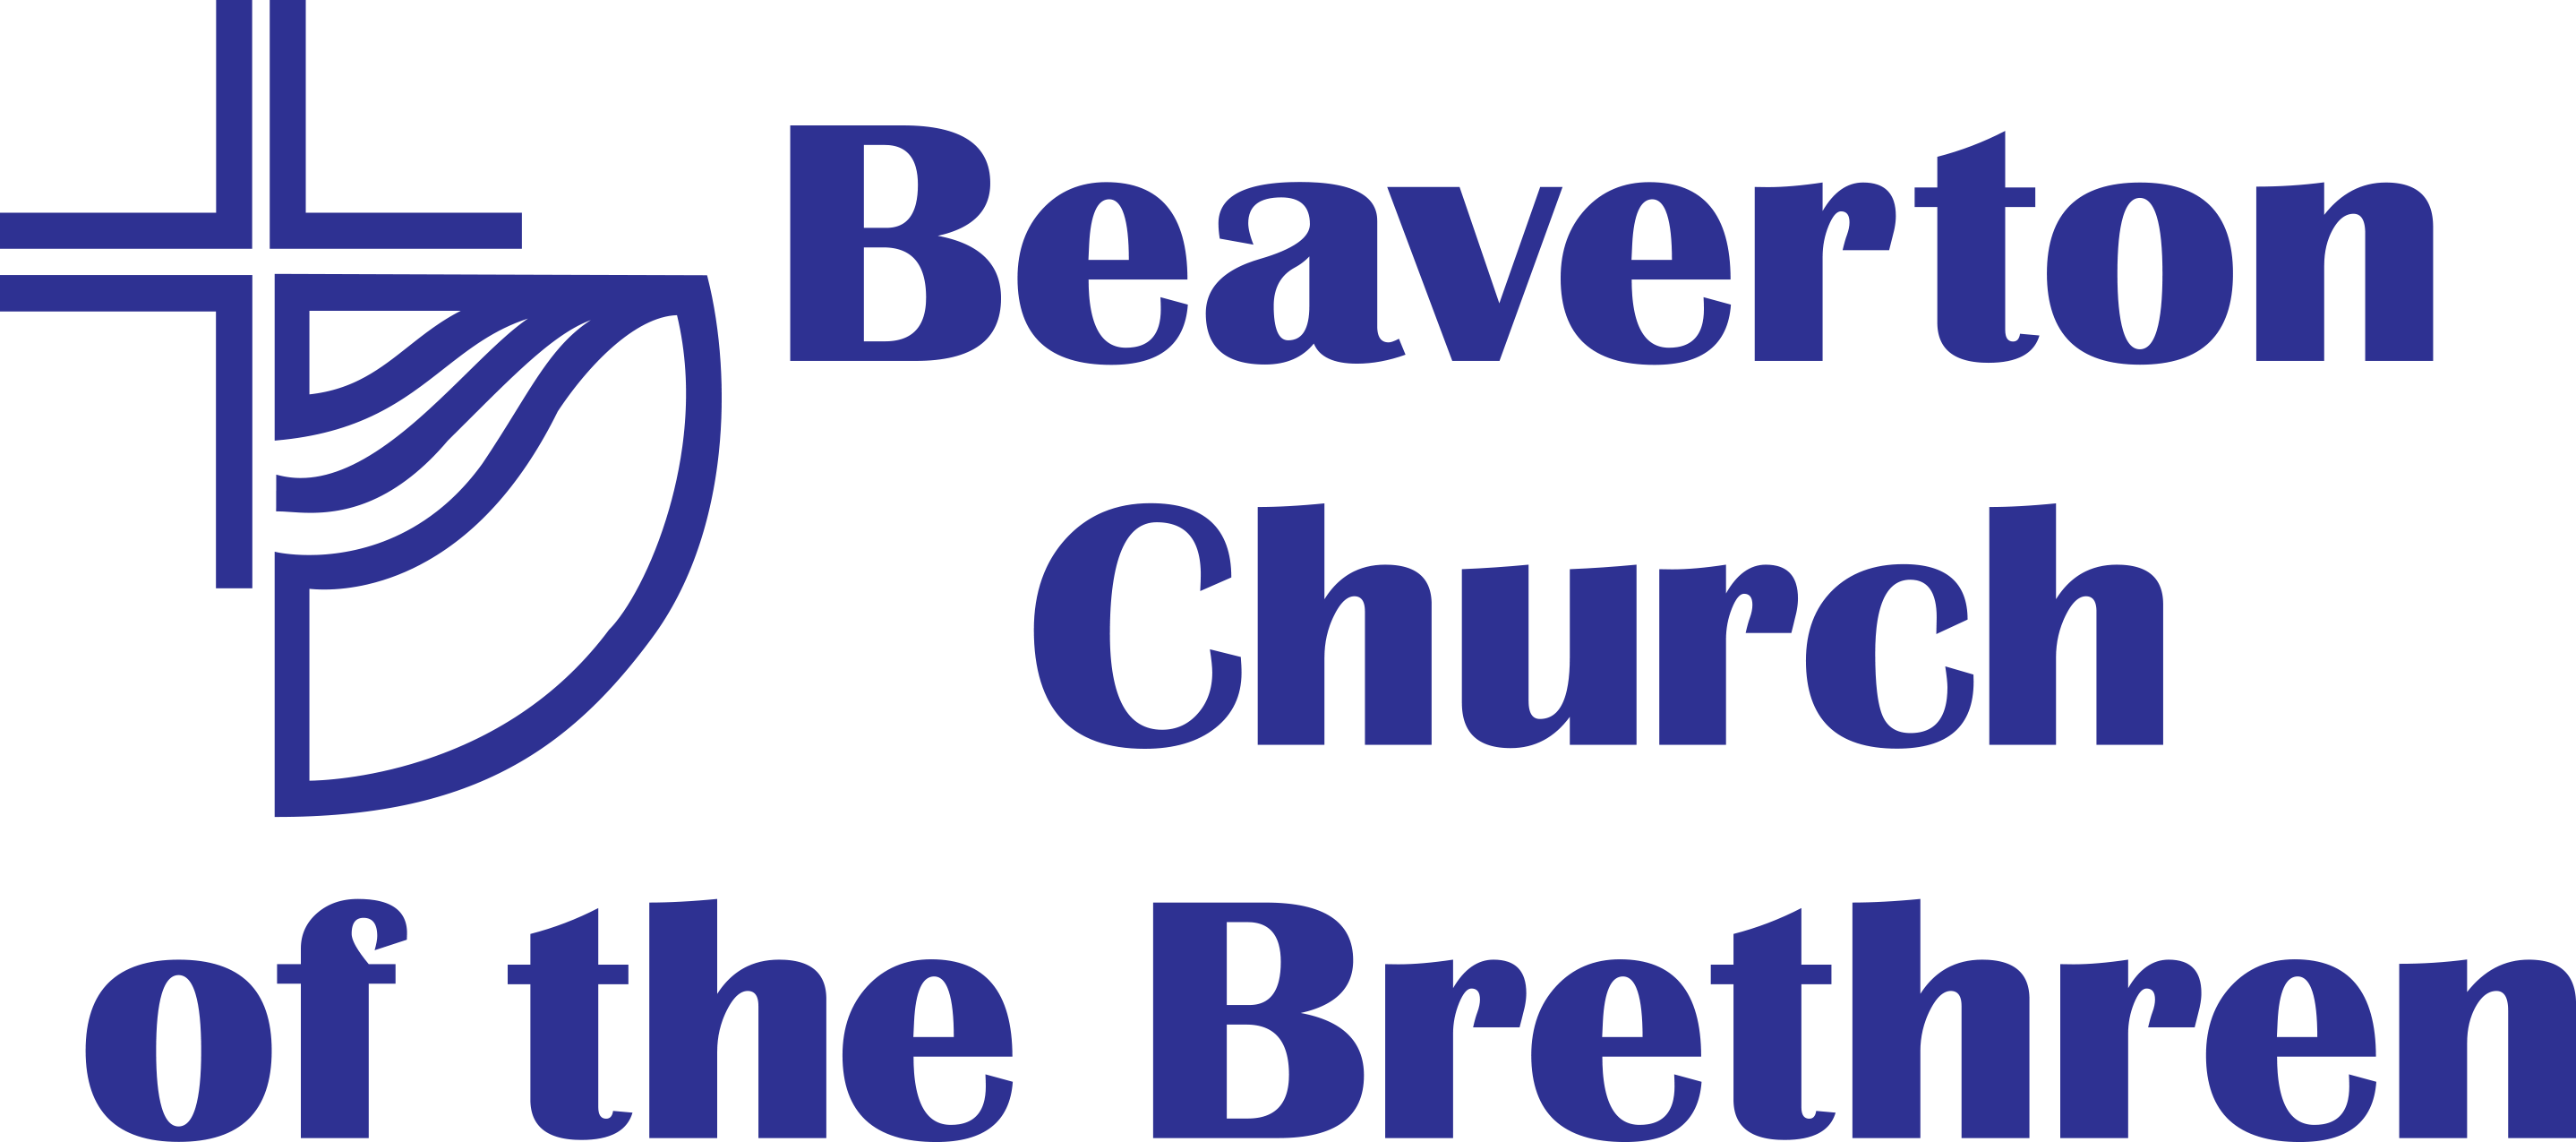 Beaverton Church of the Brethren